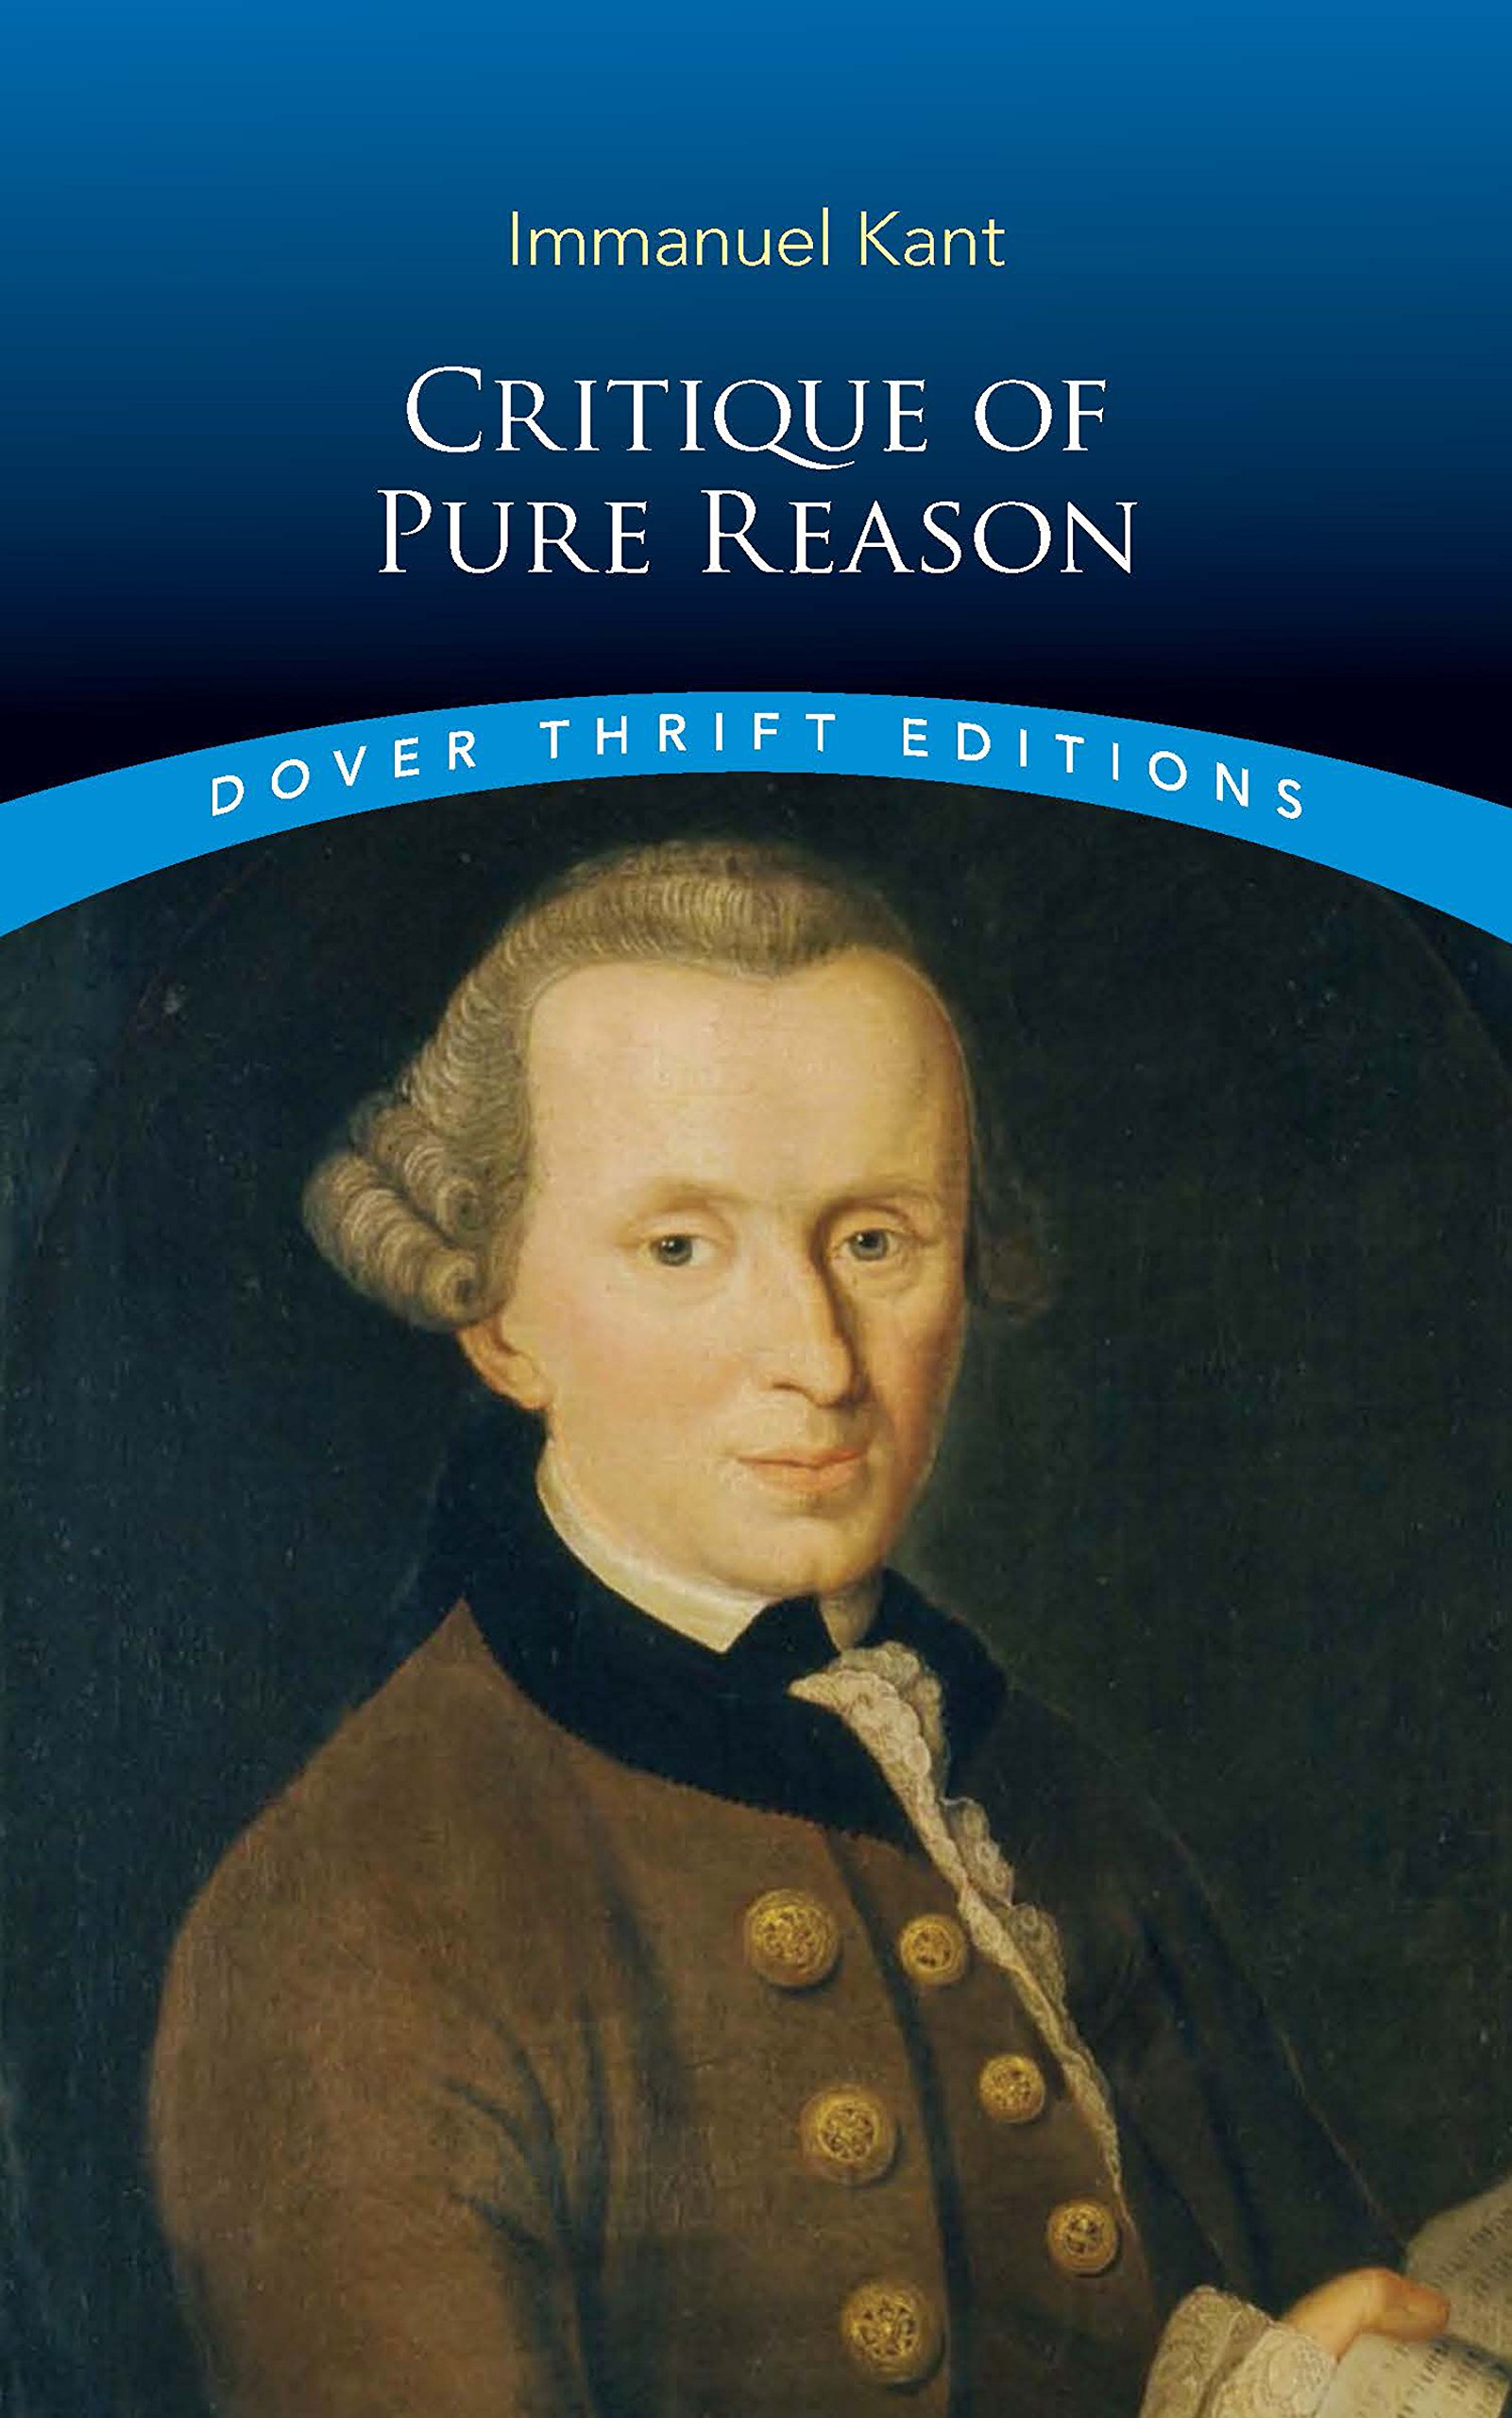 critique of pure reason dover thrift editions